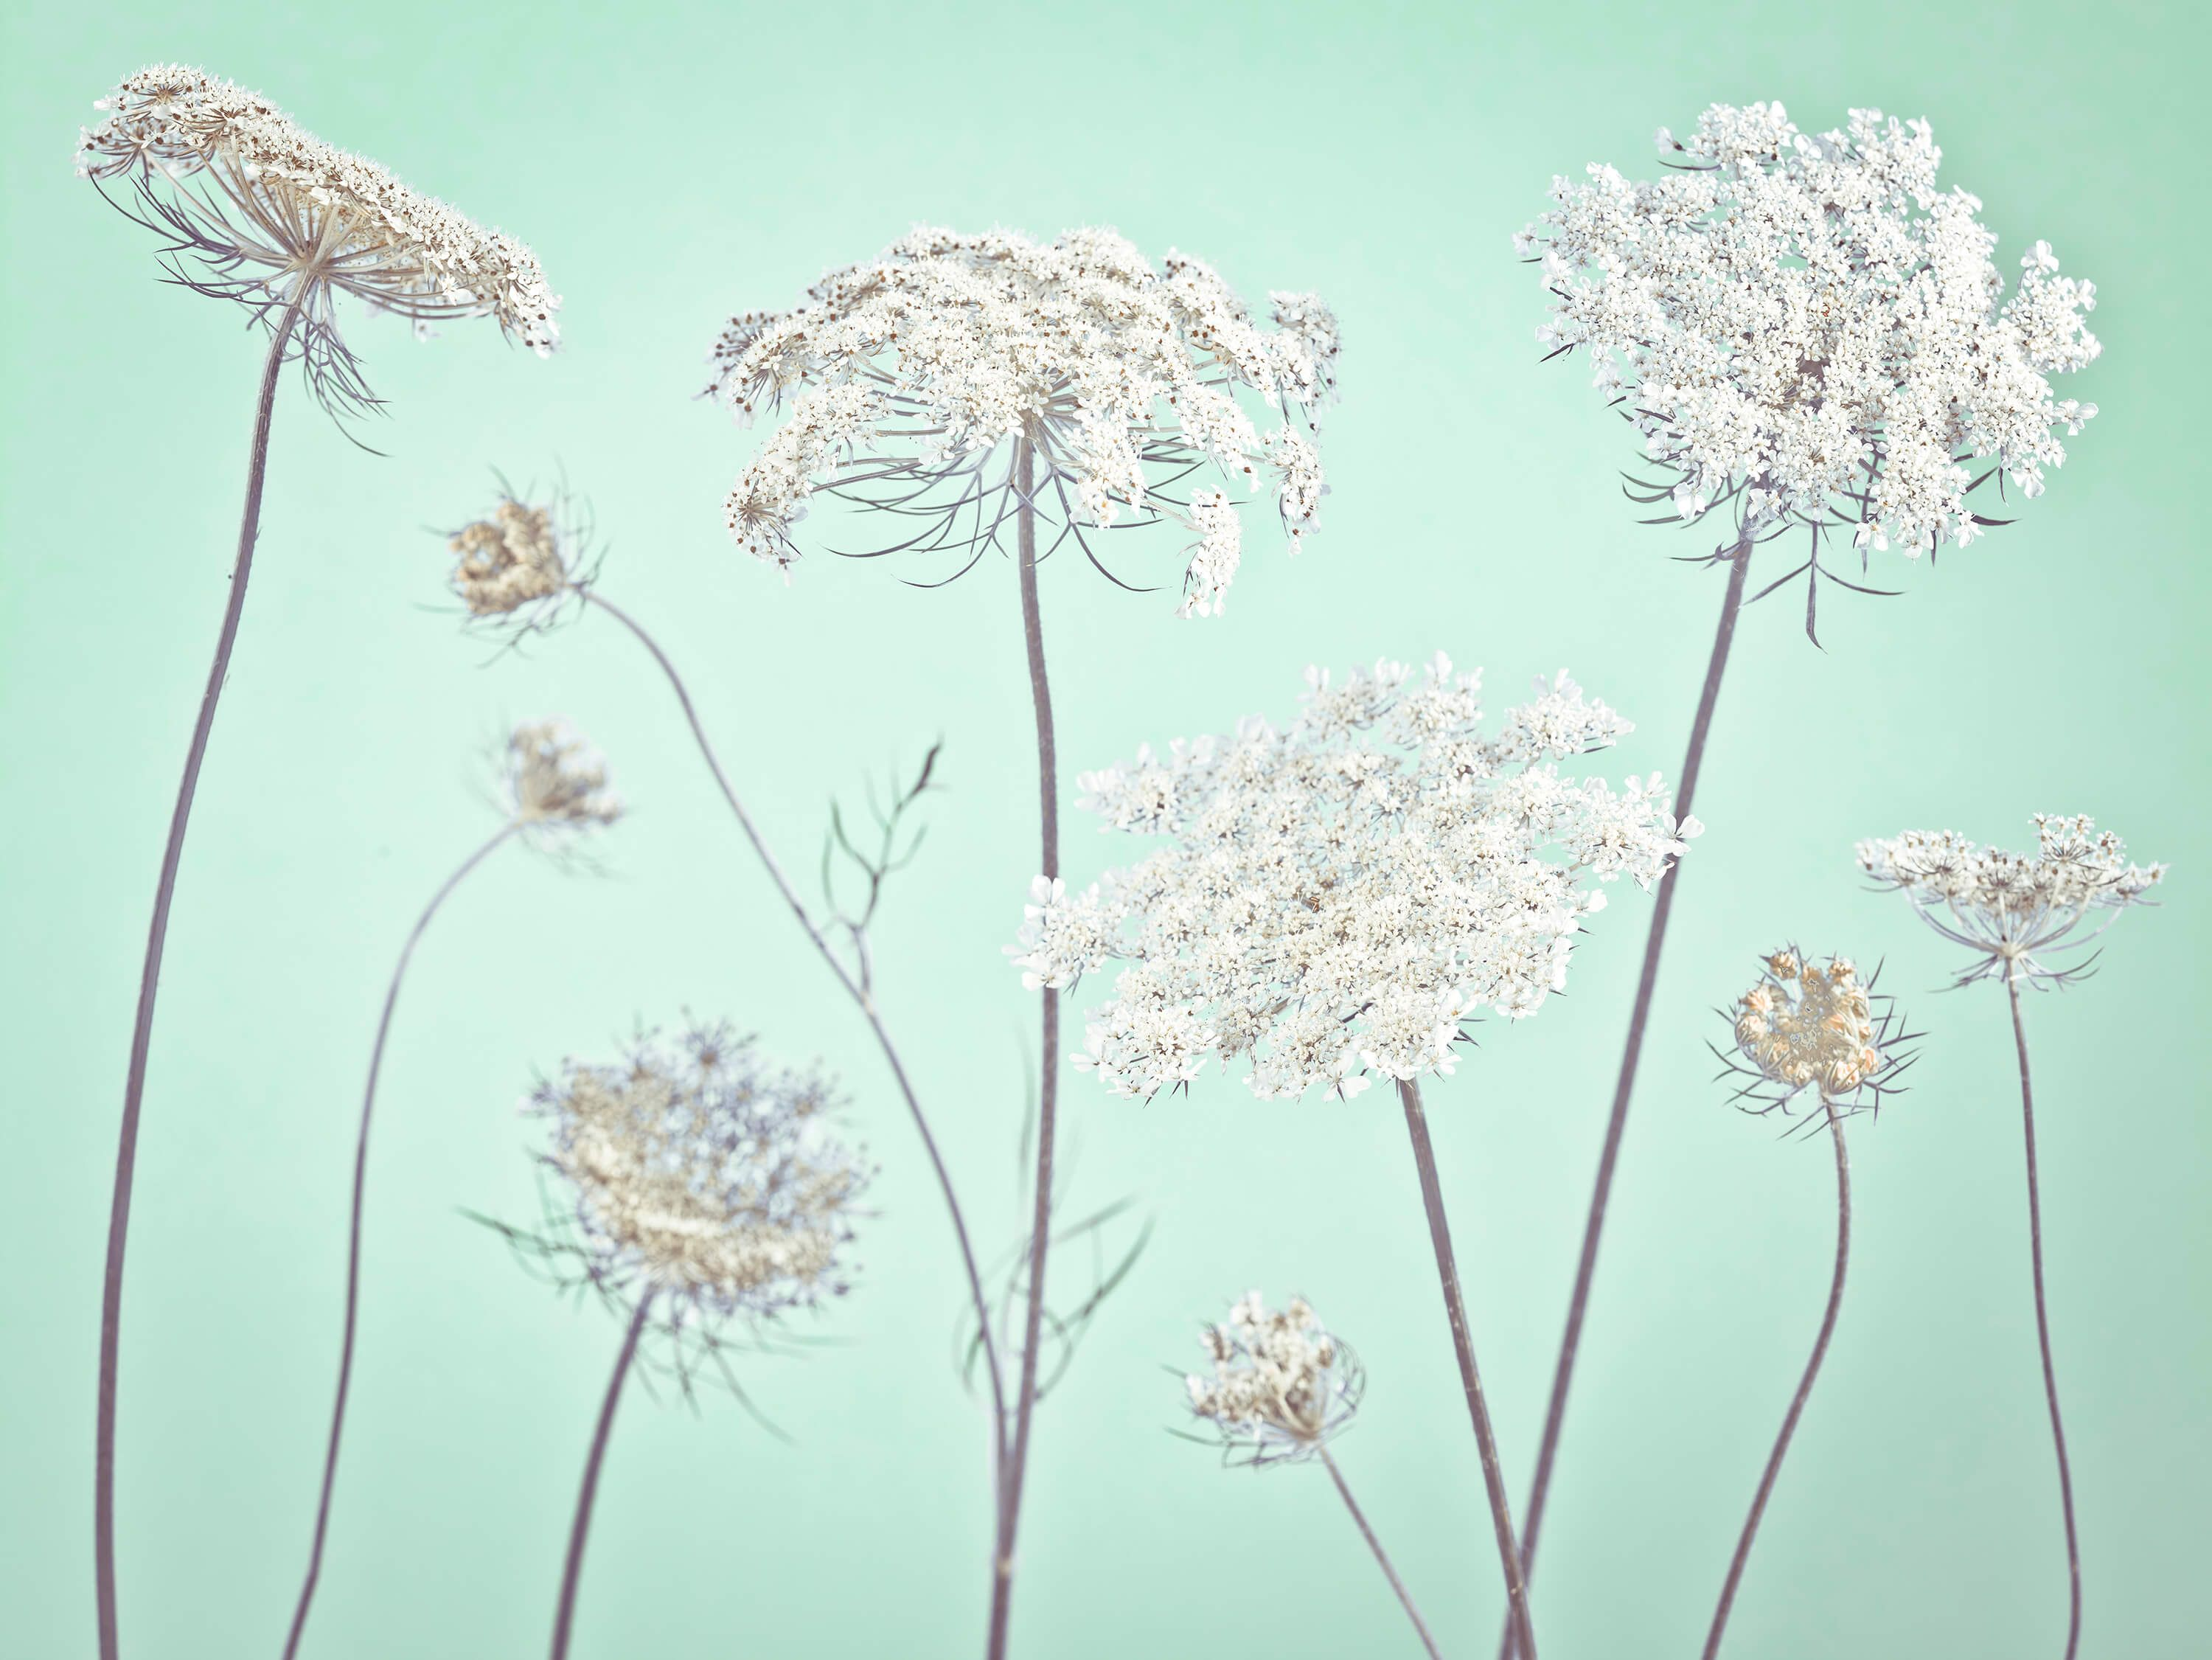 Cow parsley, green